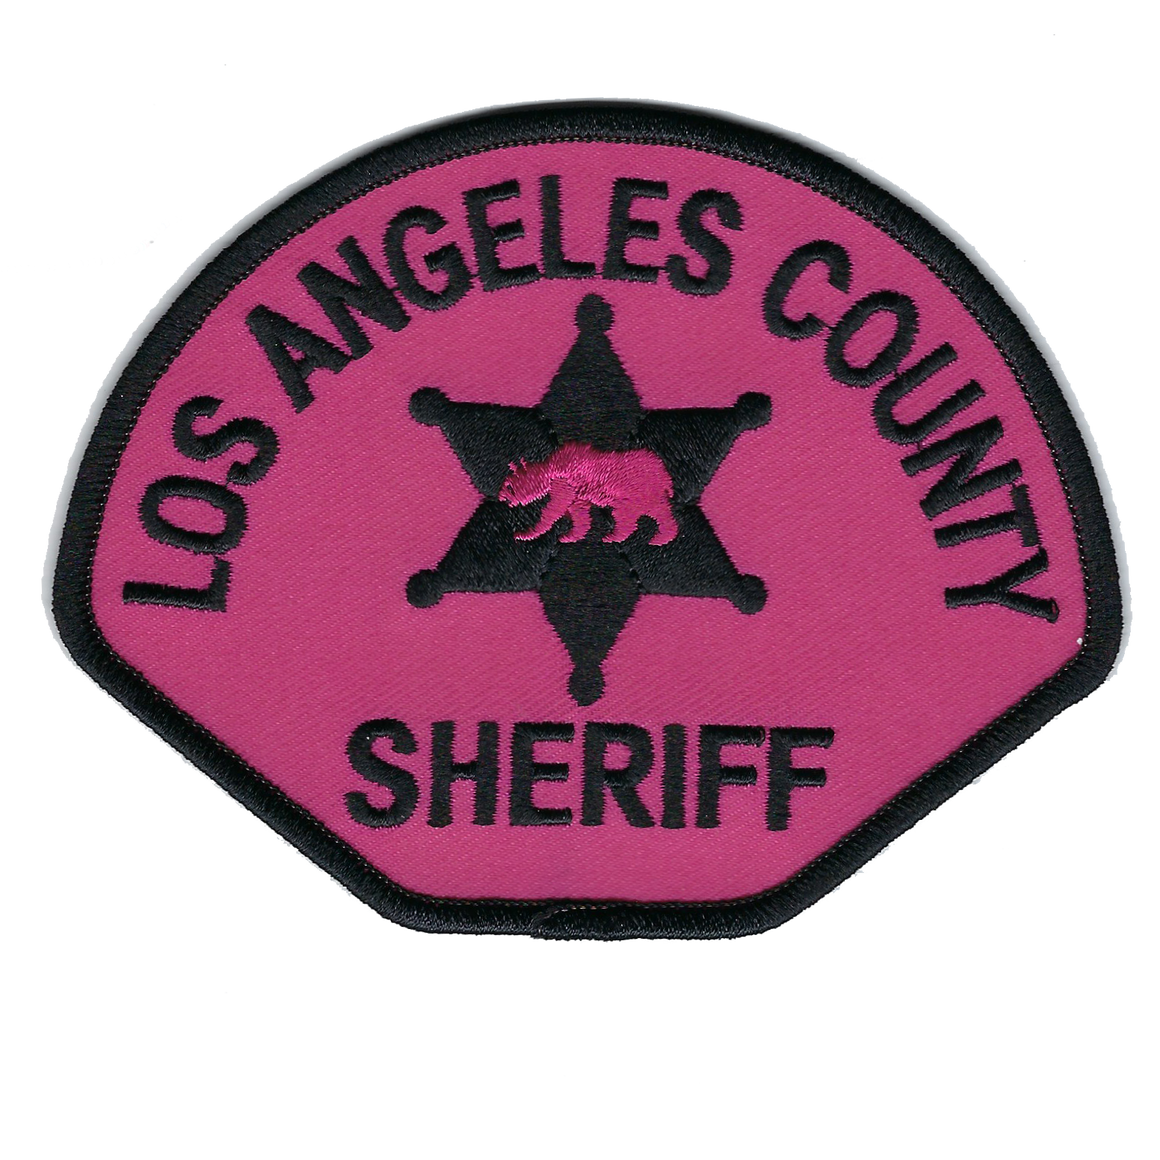 LOS ANGELES COUNTY SHERIFF PINK PATCH 2018  #pinkpatchproject